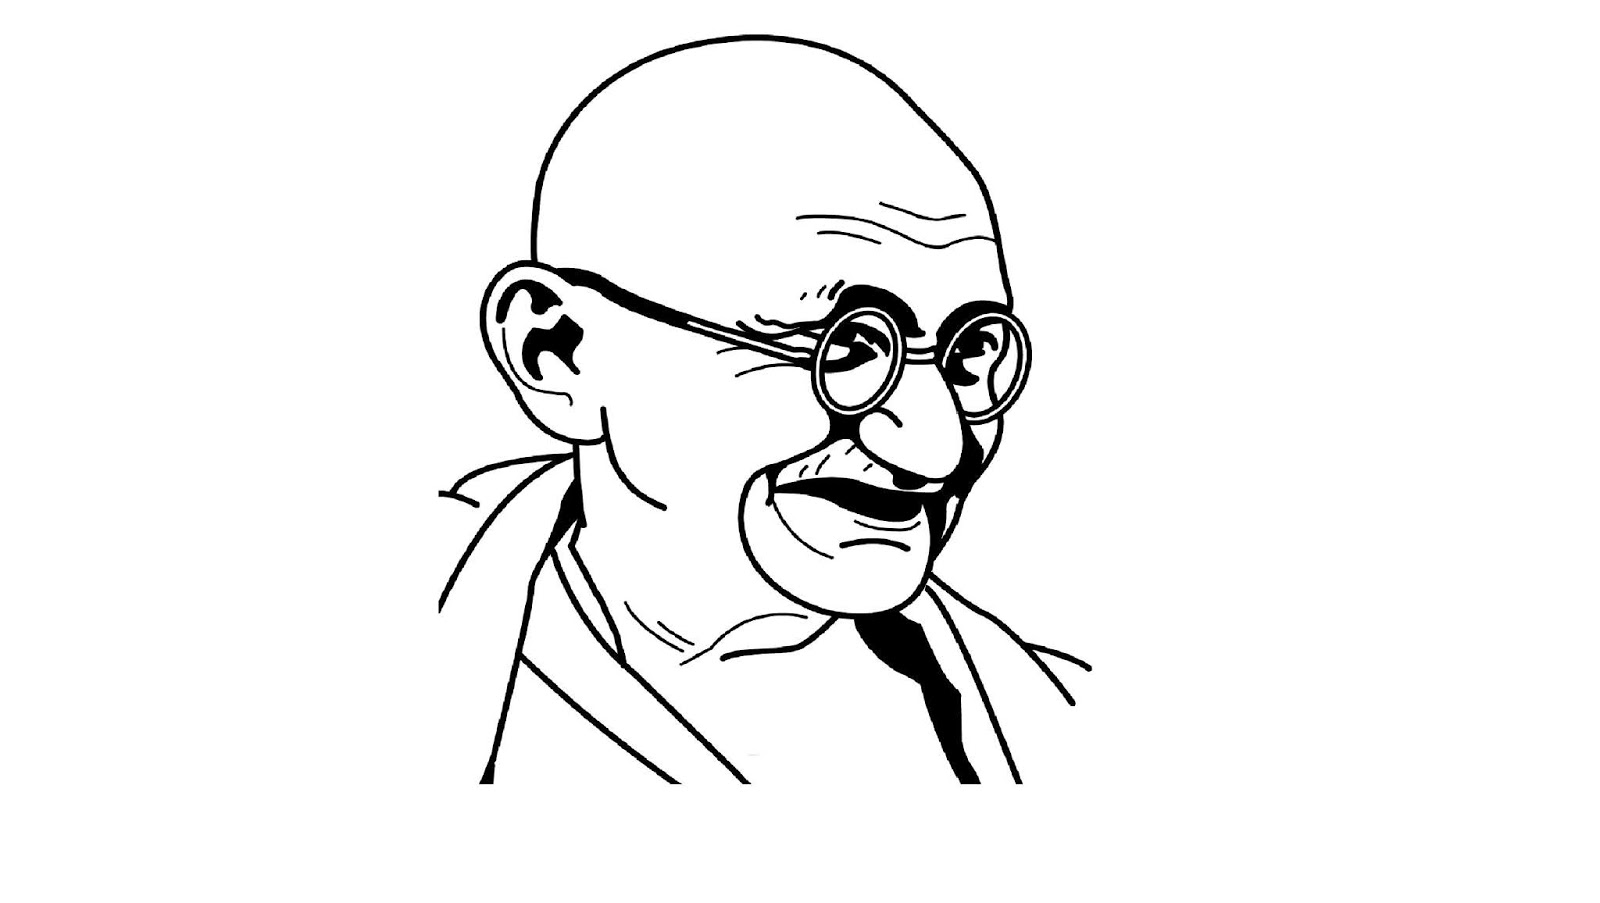 Mahatma gandhi drawing